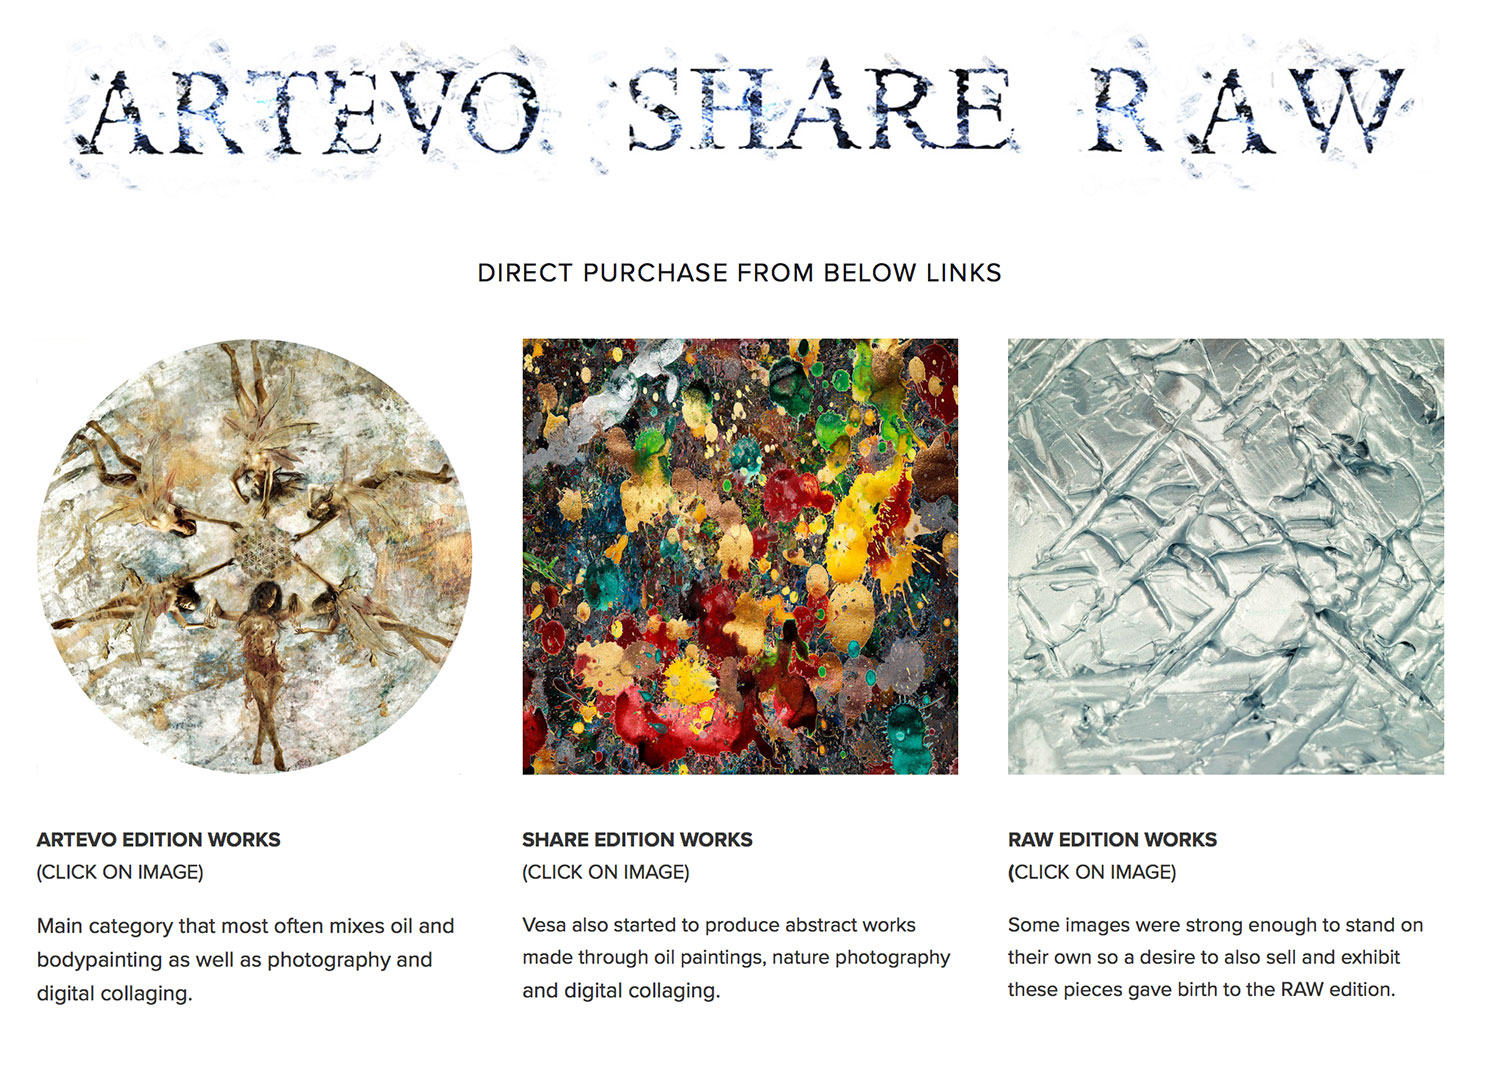 By Clicking this image you will directed to the Artevo main site, Enquire direct from us on availability via cryptocurrencies.